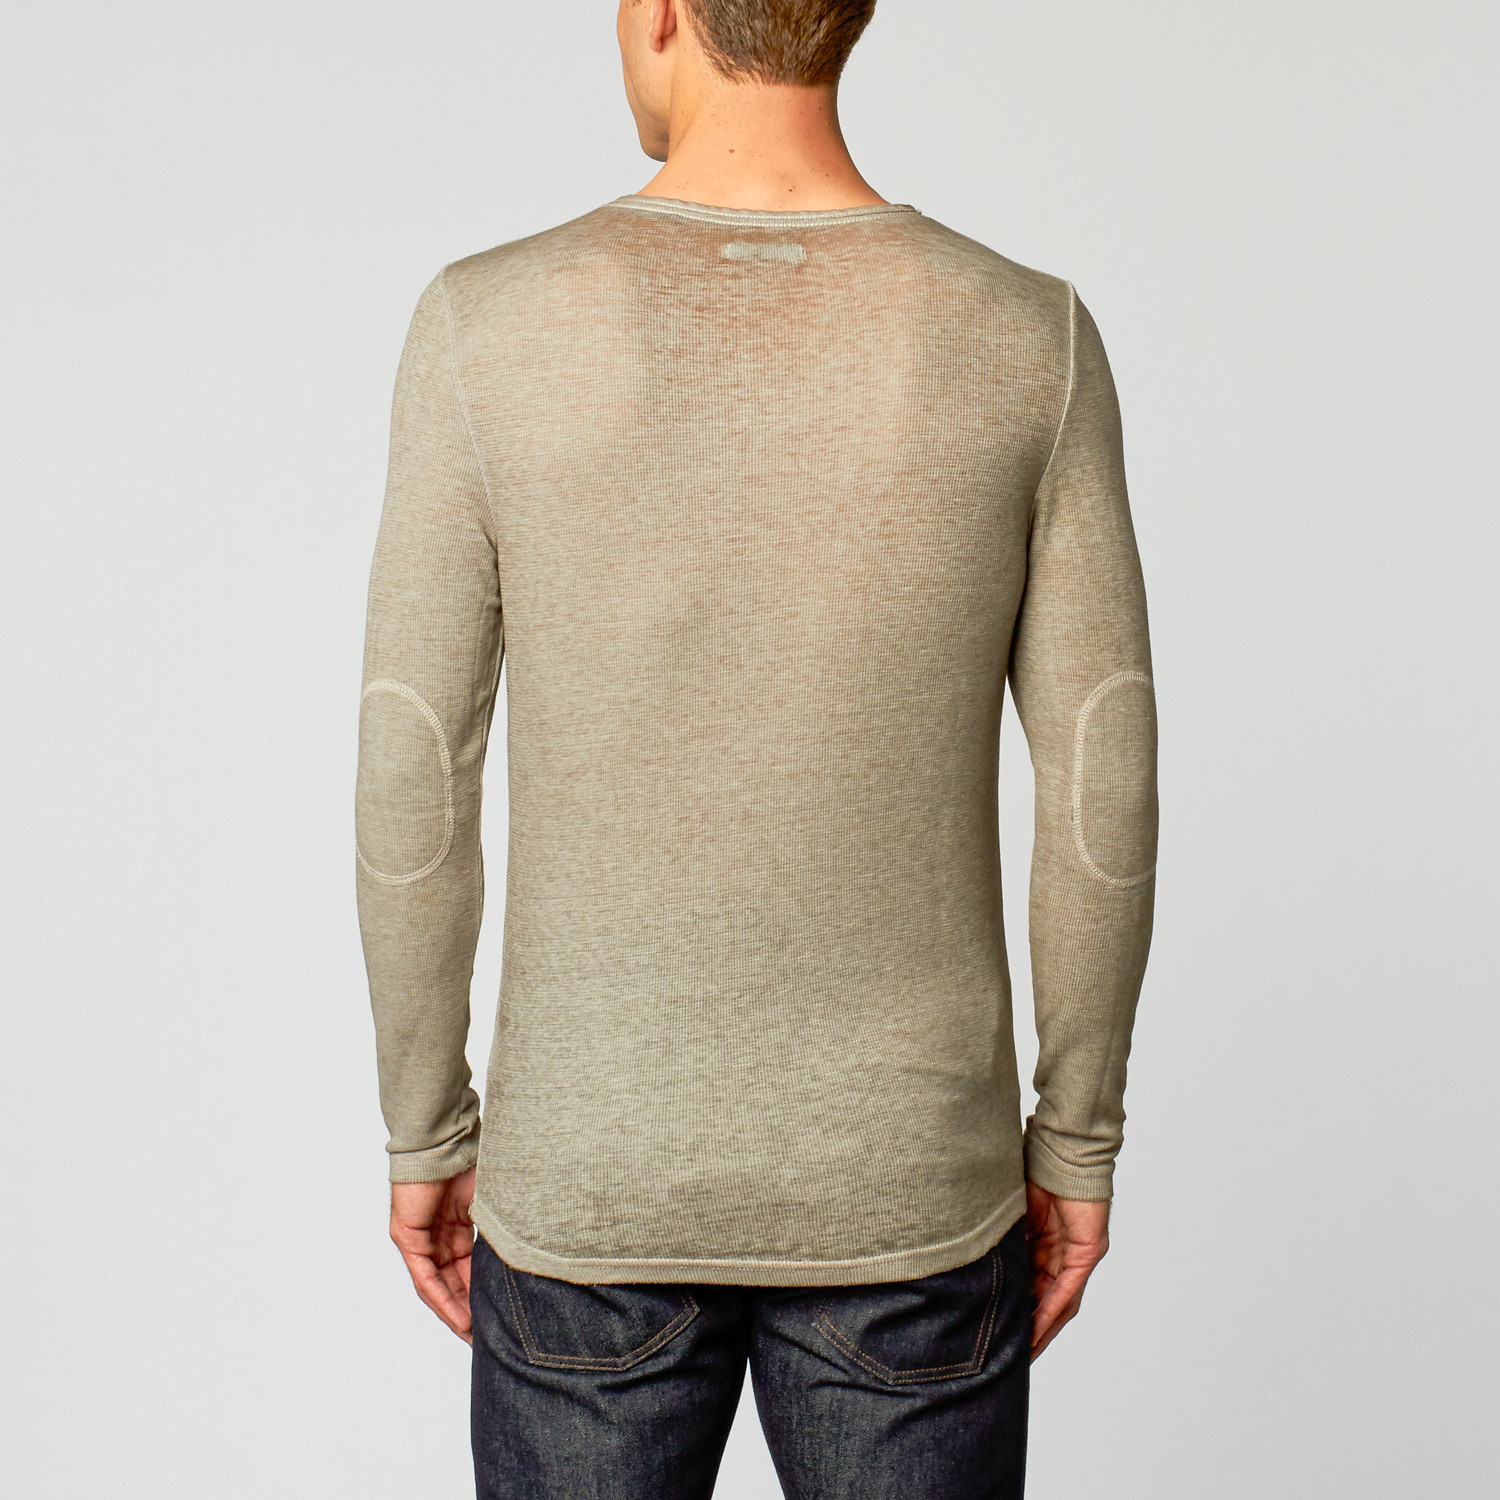 Burnout Long Sleeve Henley Light Grey S Royal Knights Co Touc